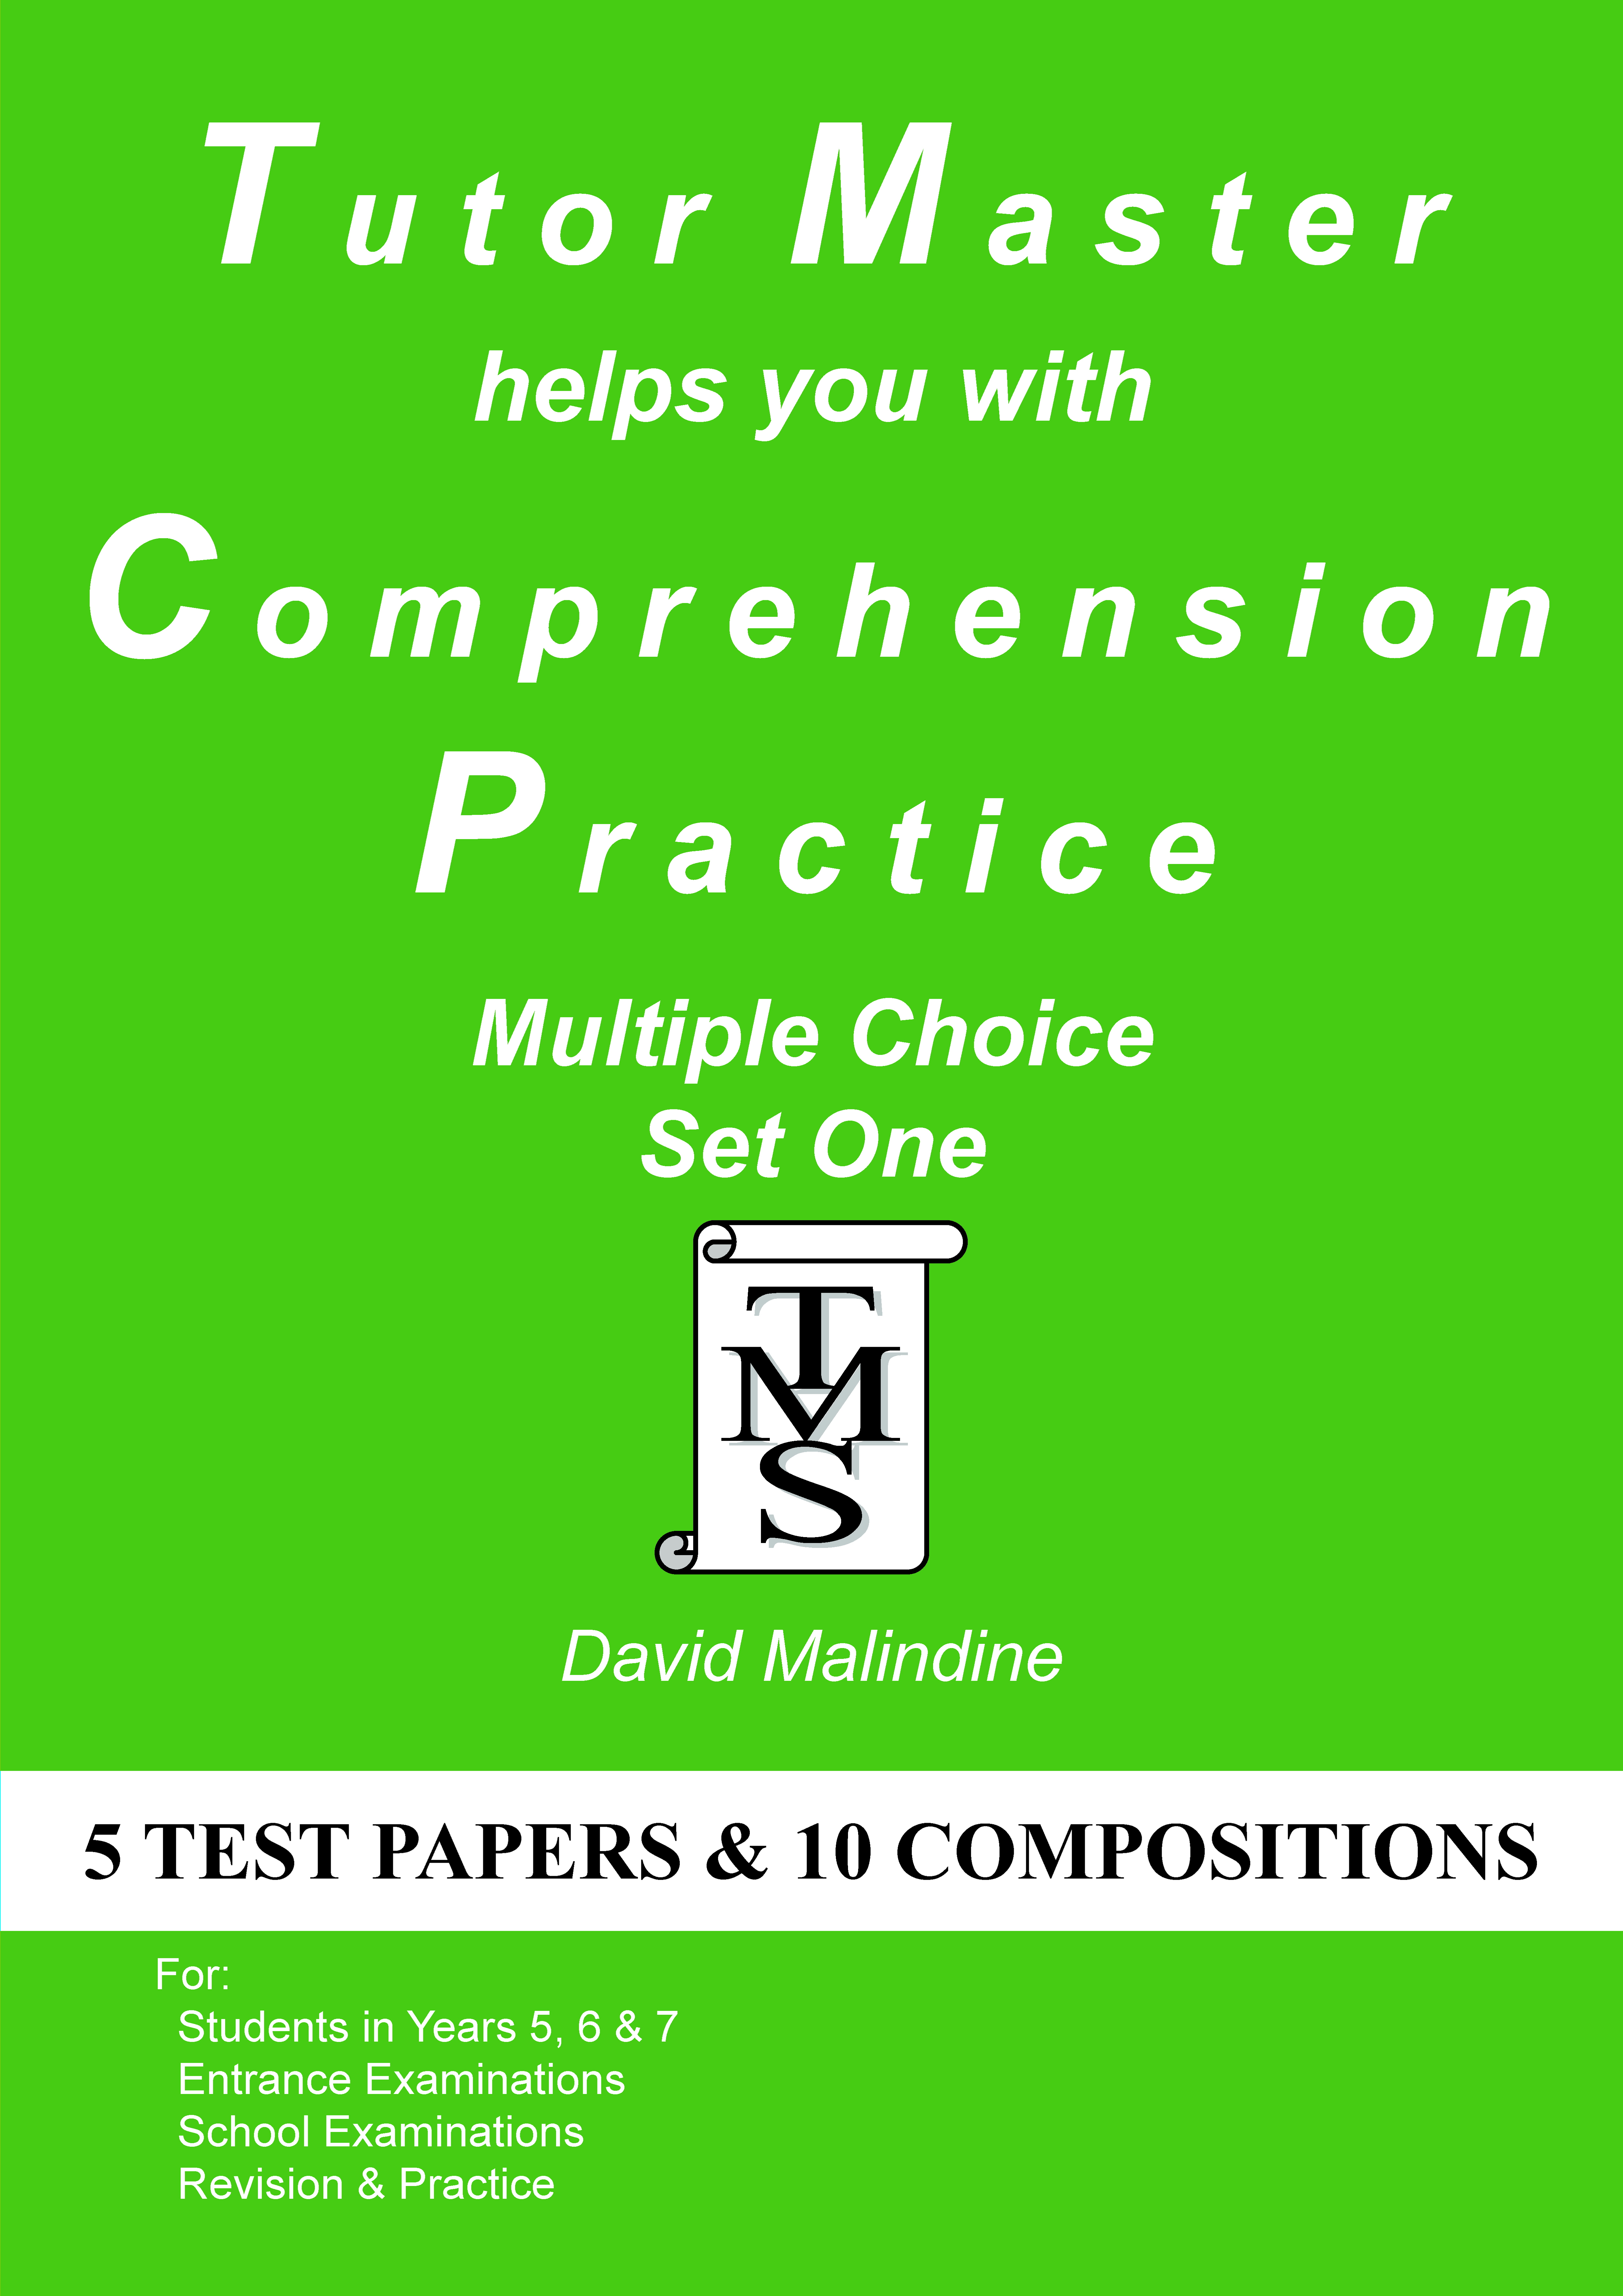 The  cover of Tutor Master helps you with Comprehension Practice - Multiple Choice Set One